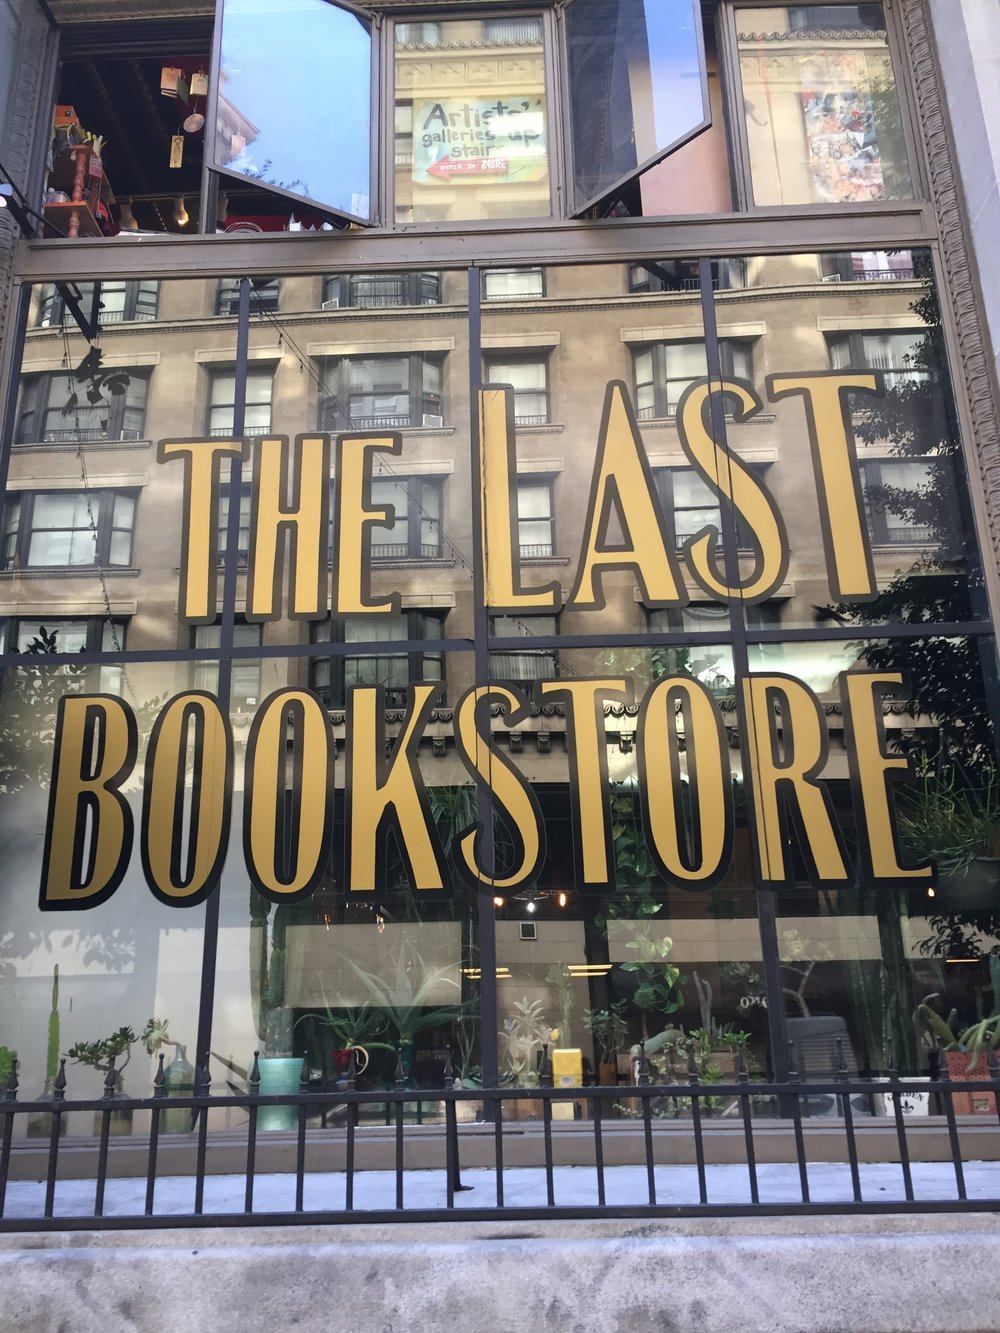 """[image description: the store window of The Last Bookstore. The window has potted plants at the bottom and is reflecting the building across the street and has """"The Last Bookstore"""" painted in gold lettering.]"""